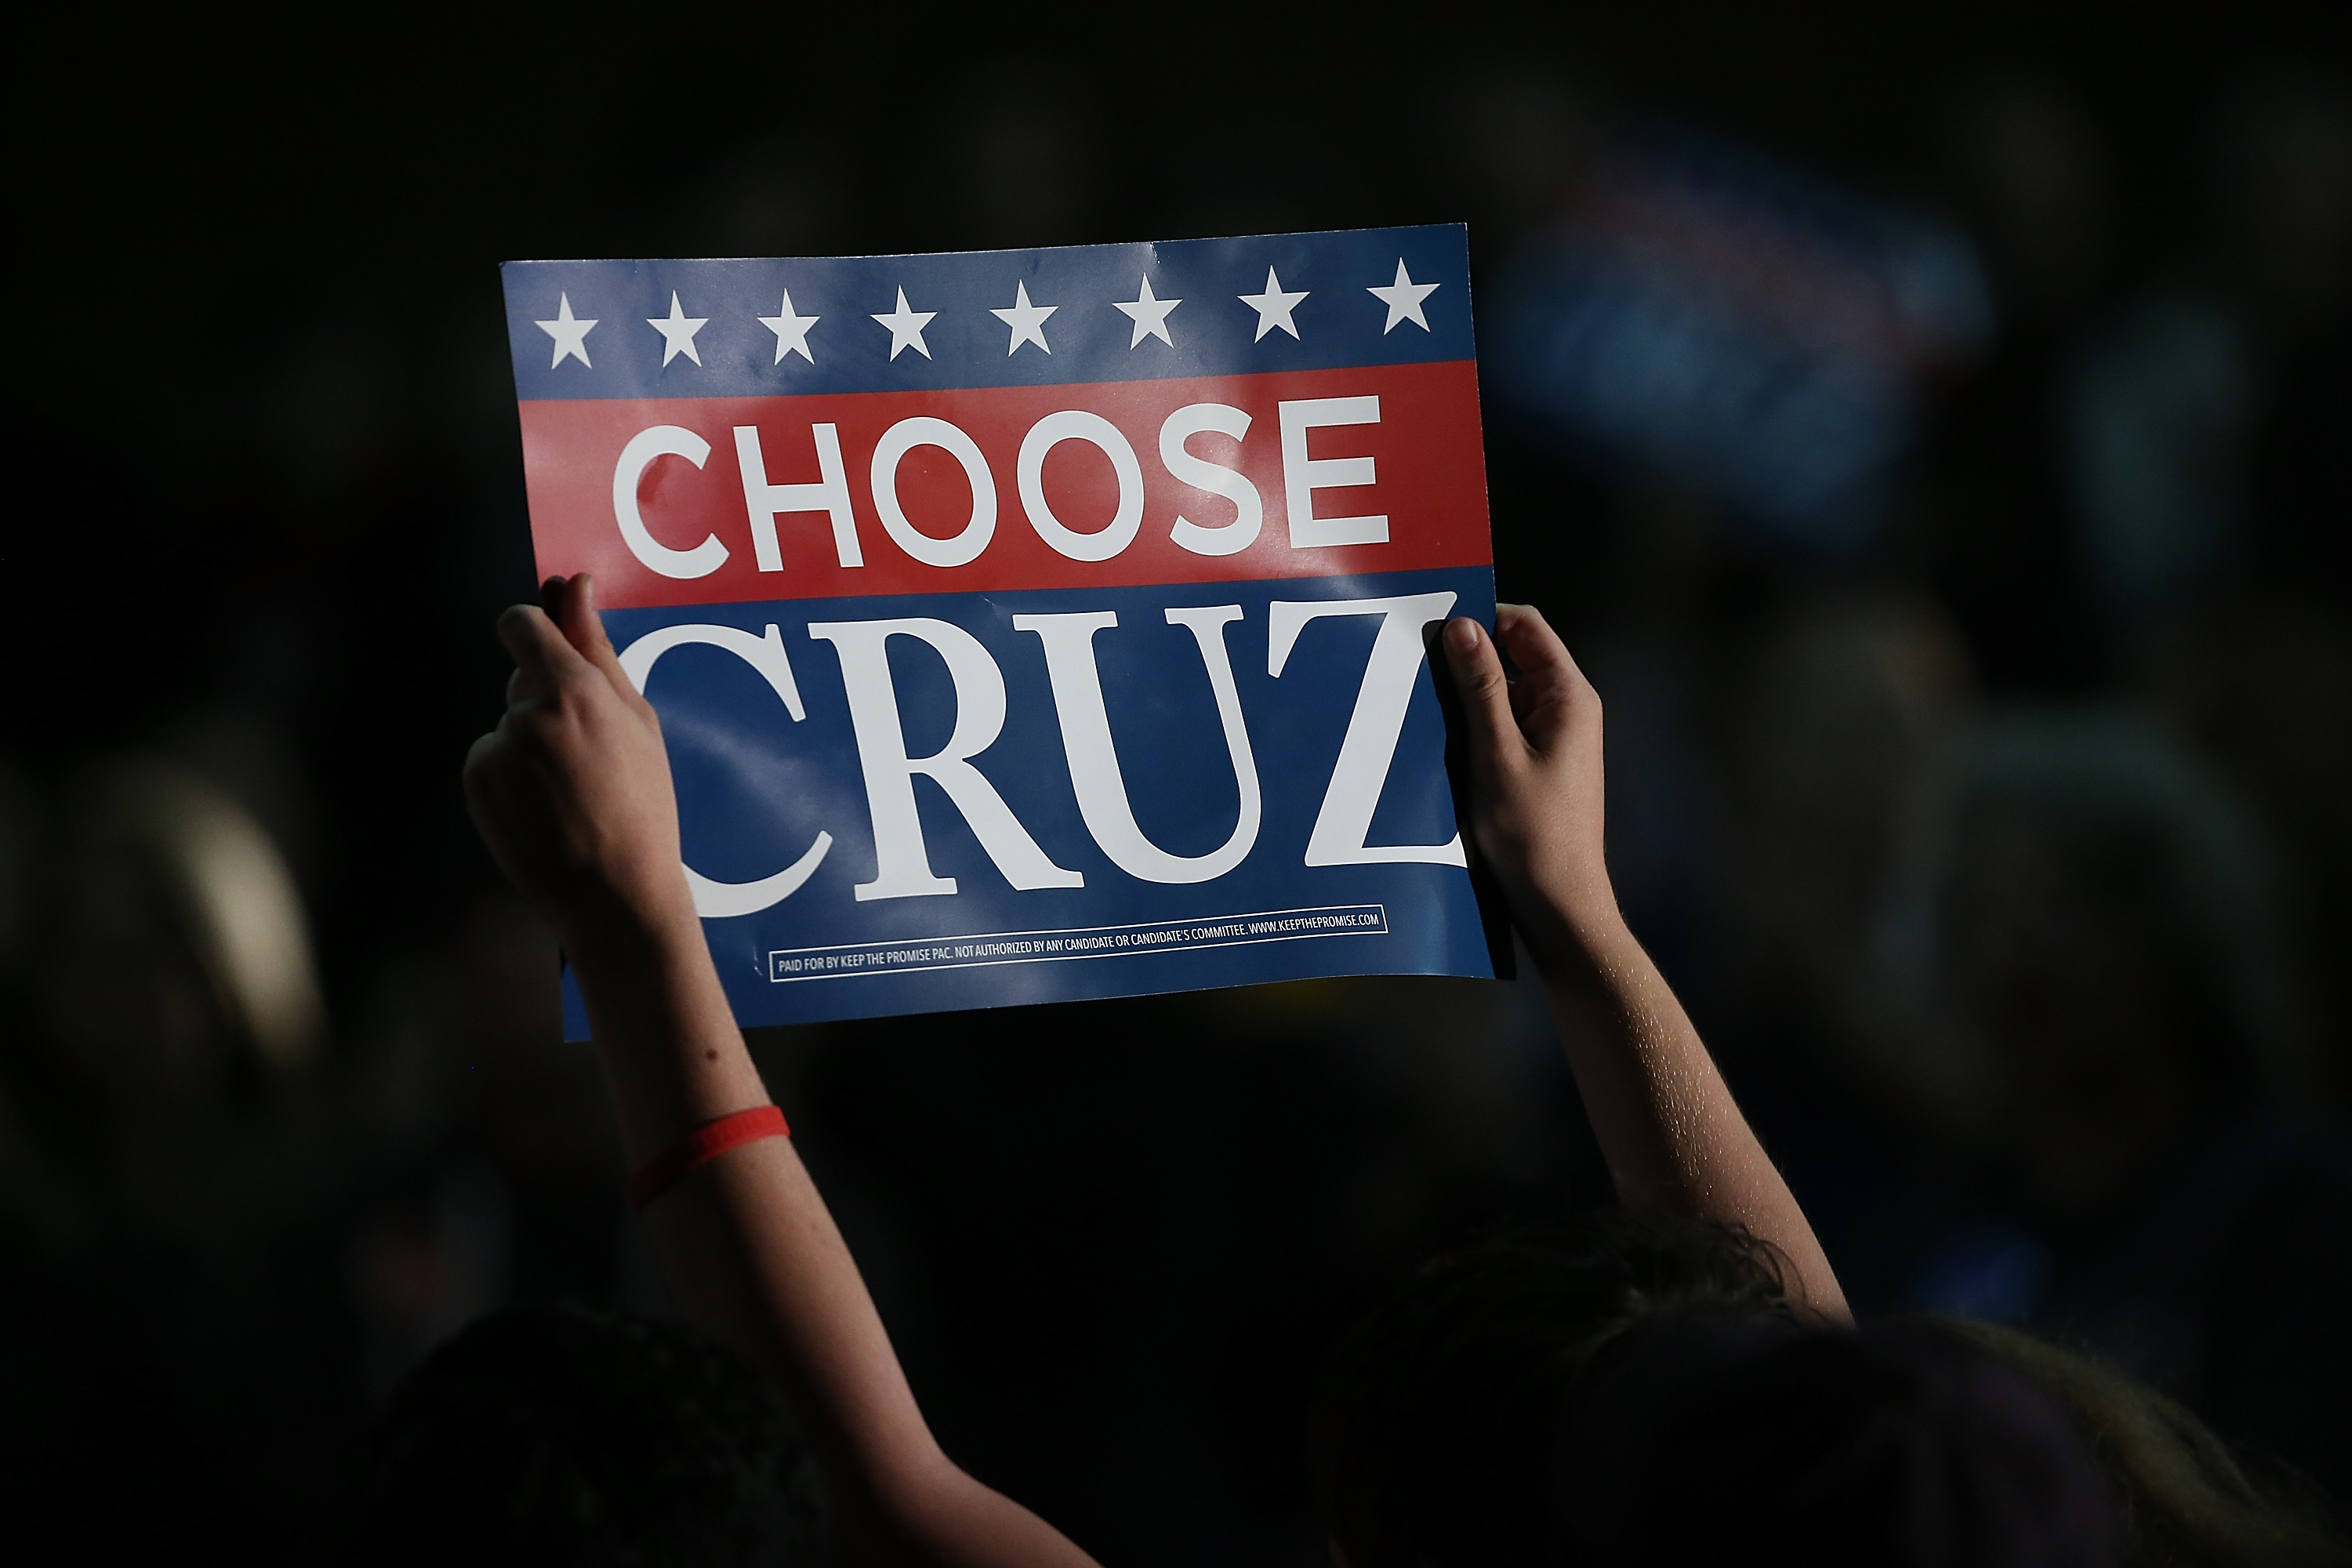 Cruz won on the backs of evangelical voters who turned out in large numbers.